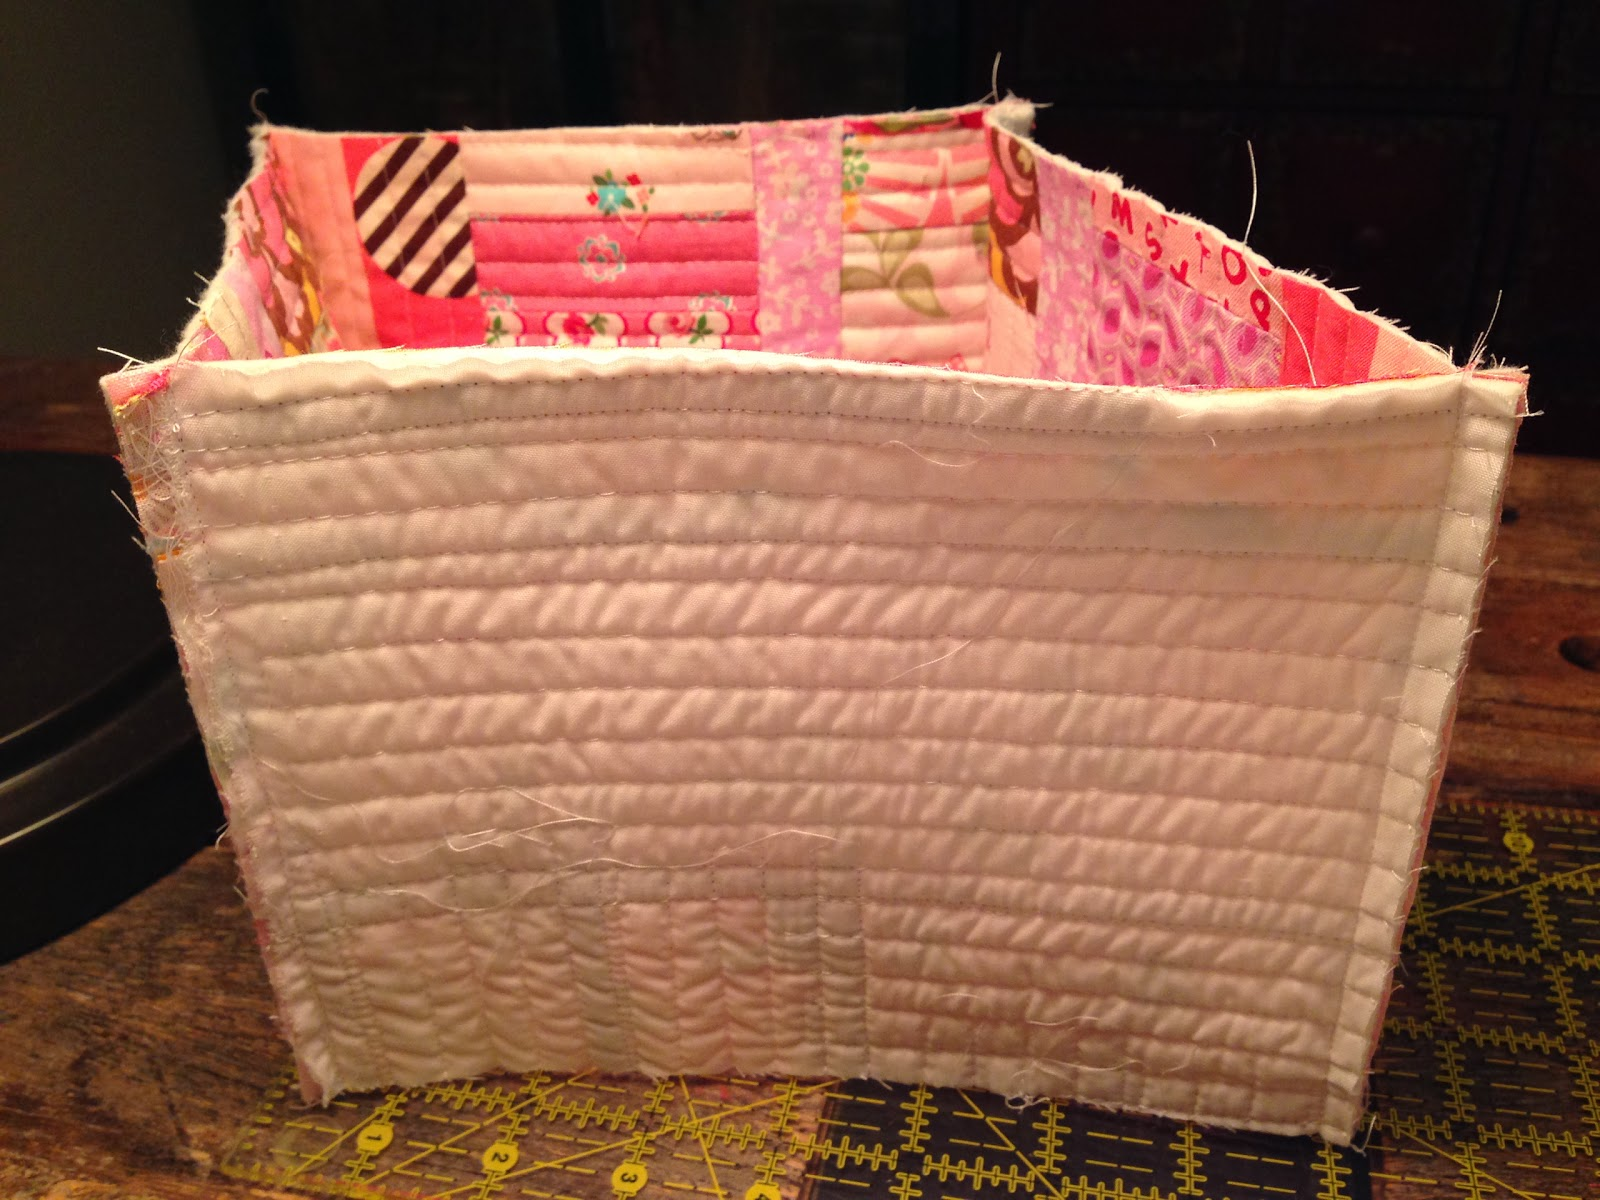 dream quilt create: Lined Fabric Basket Tutorial : quilted basket pattern - Adamdwight.com